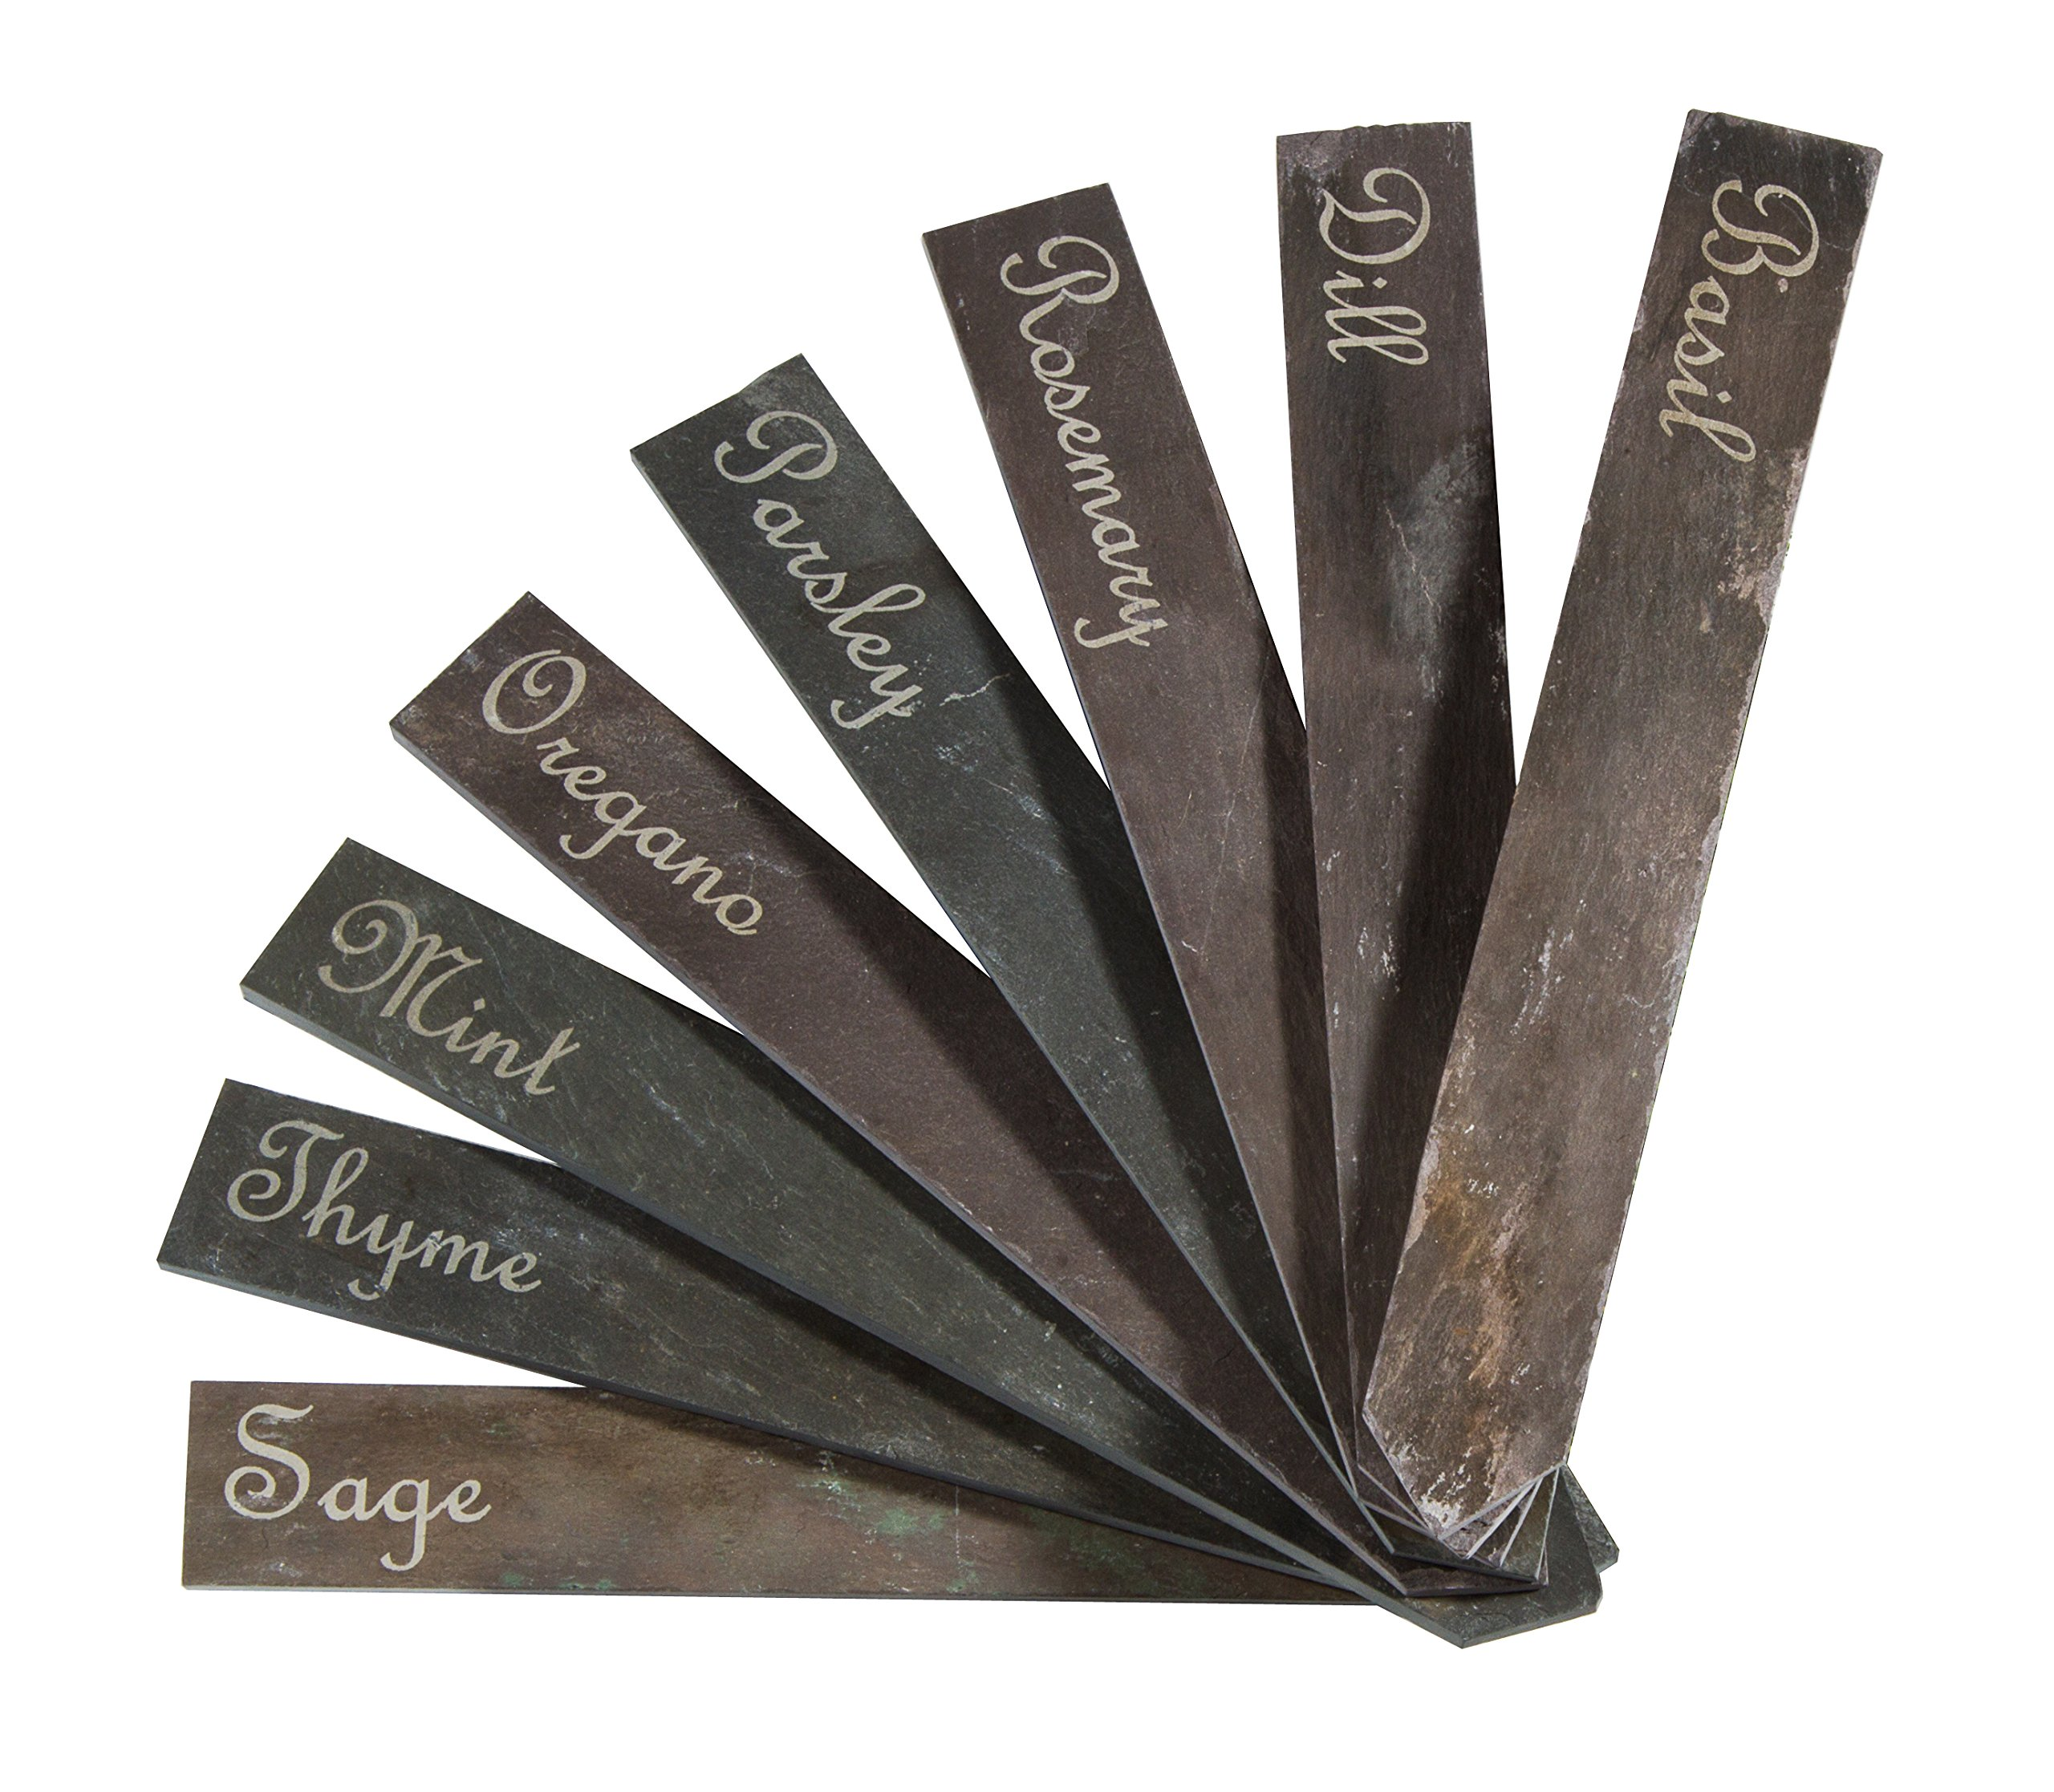 FirTree Brand Slate Garden Plant Markers. Set of 8 Etched Garden Labels for The Vegetable or Herb Garden. Made in The USA of Reclaimed England Roofing Slate. (Herbs) by FirTree Brand